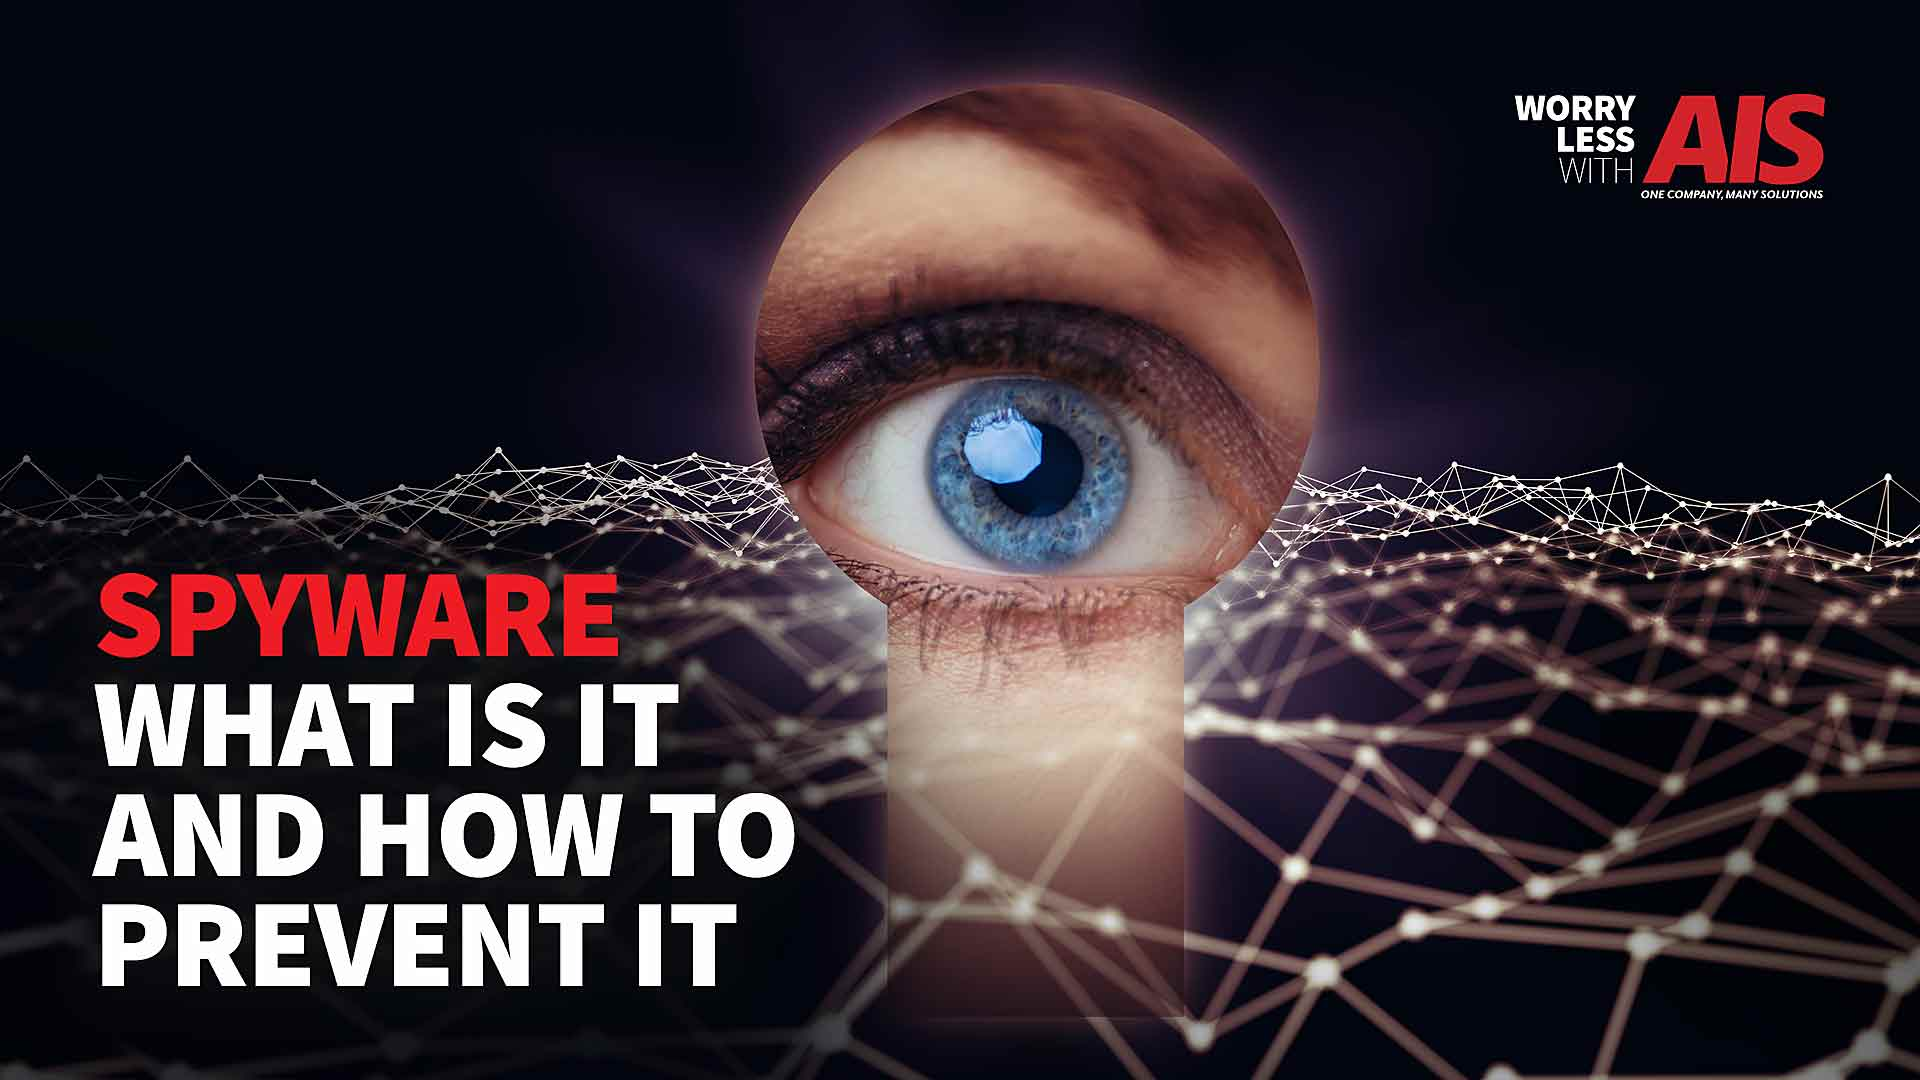 Spyware: What Is It And How Can You Prevent It?